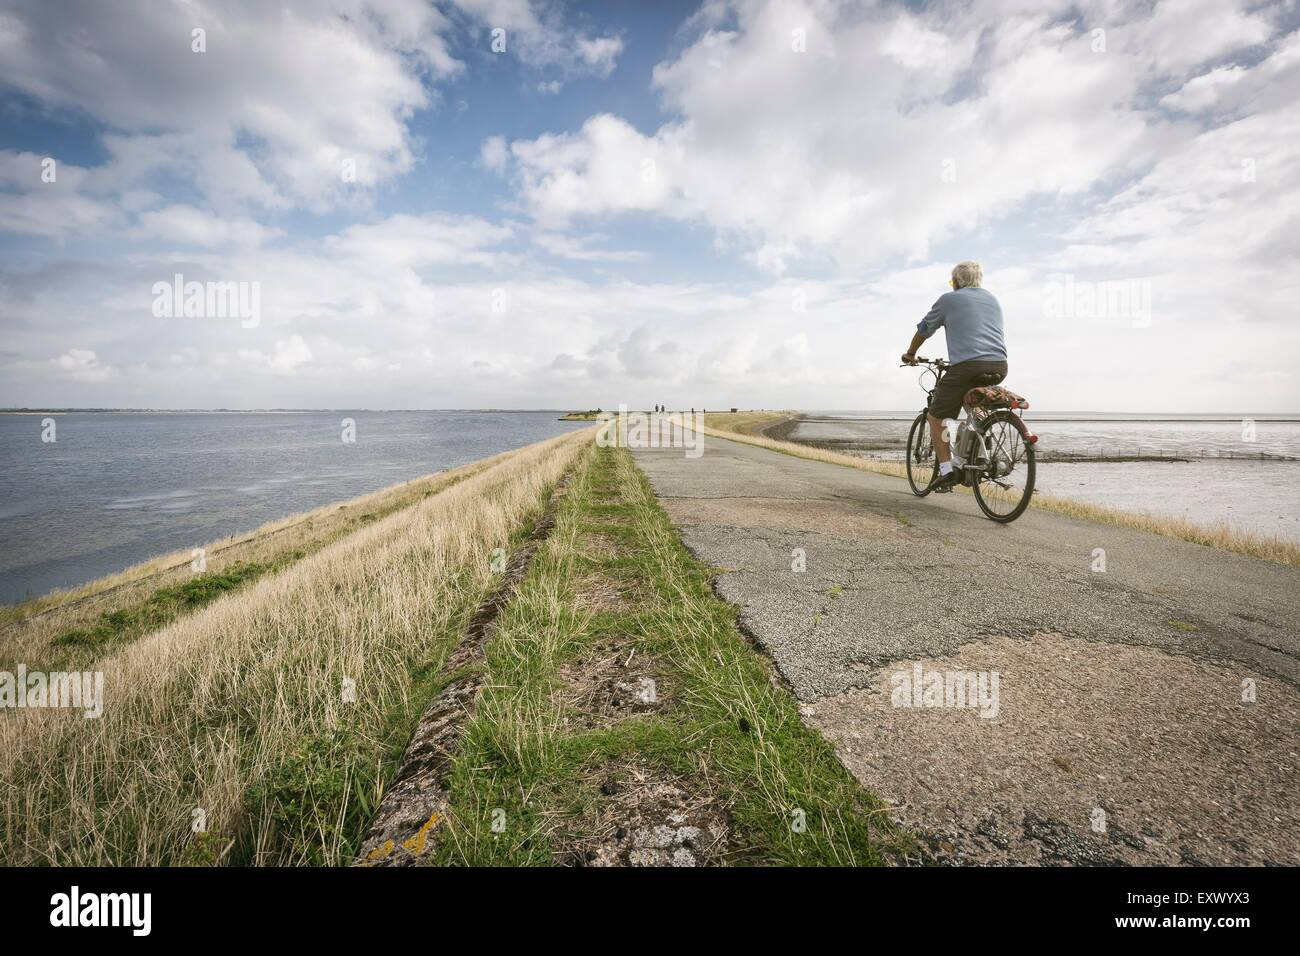 Bicyclist on dyke, Sylt, Schleswig-Holstein, Germany, Europe - Stock Image